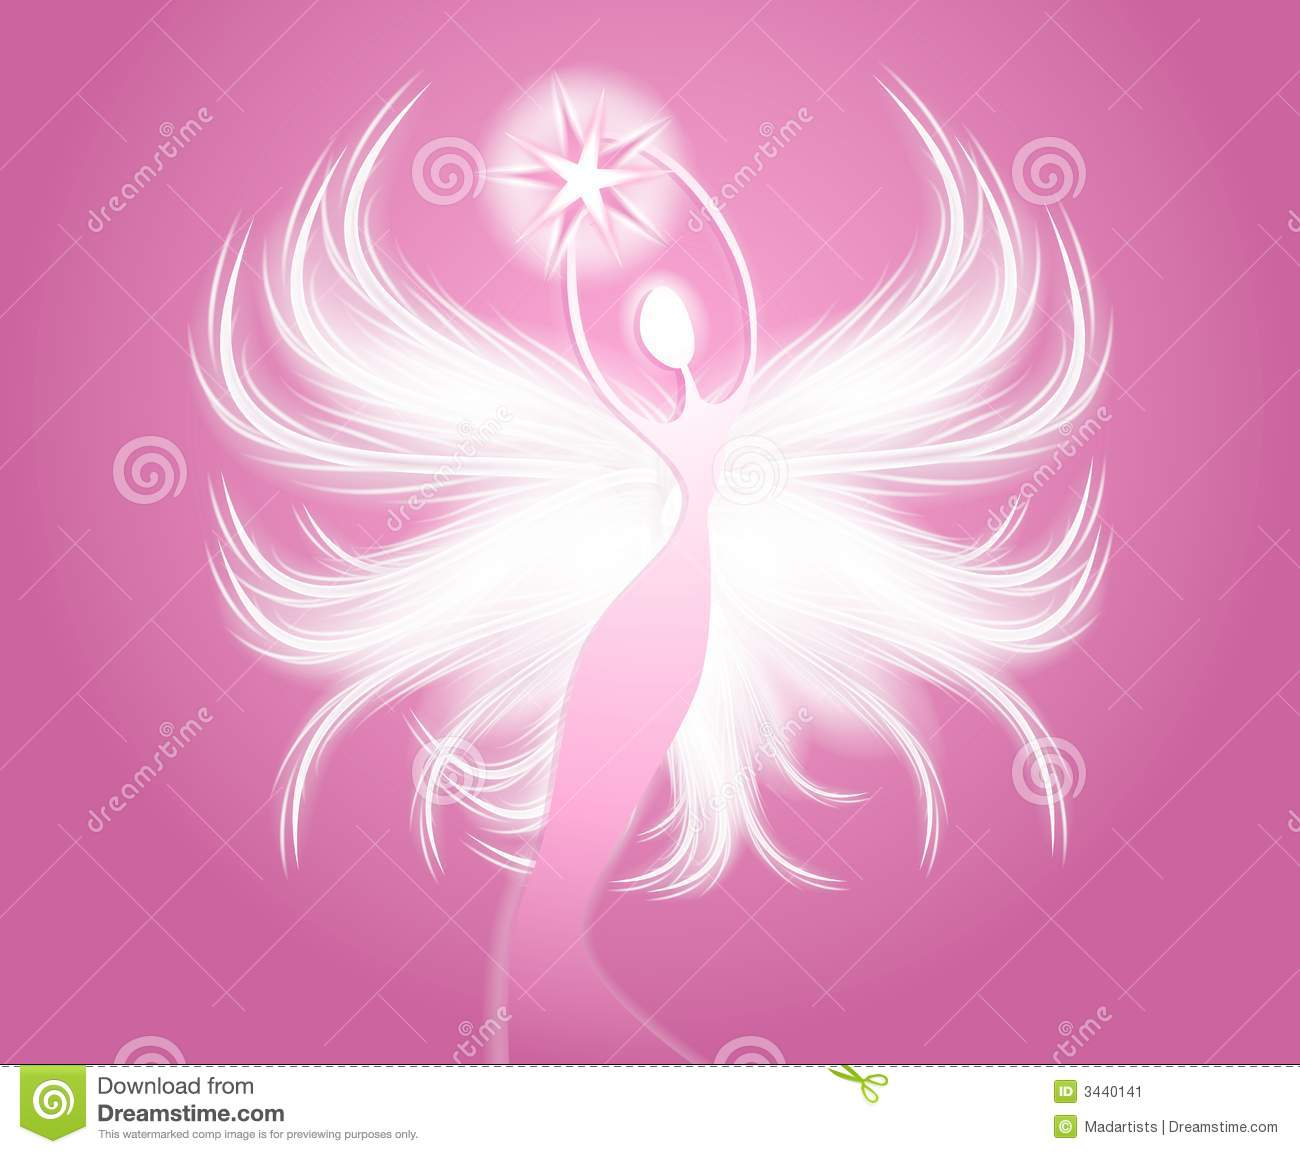 clip art illustration featuring a beautiful angel with white ...